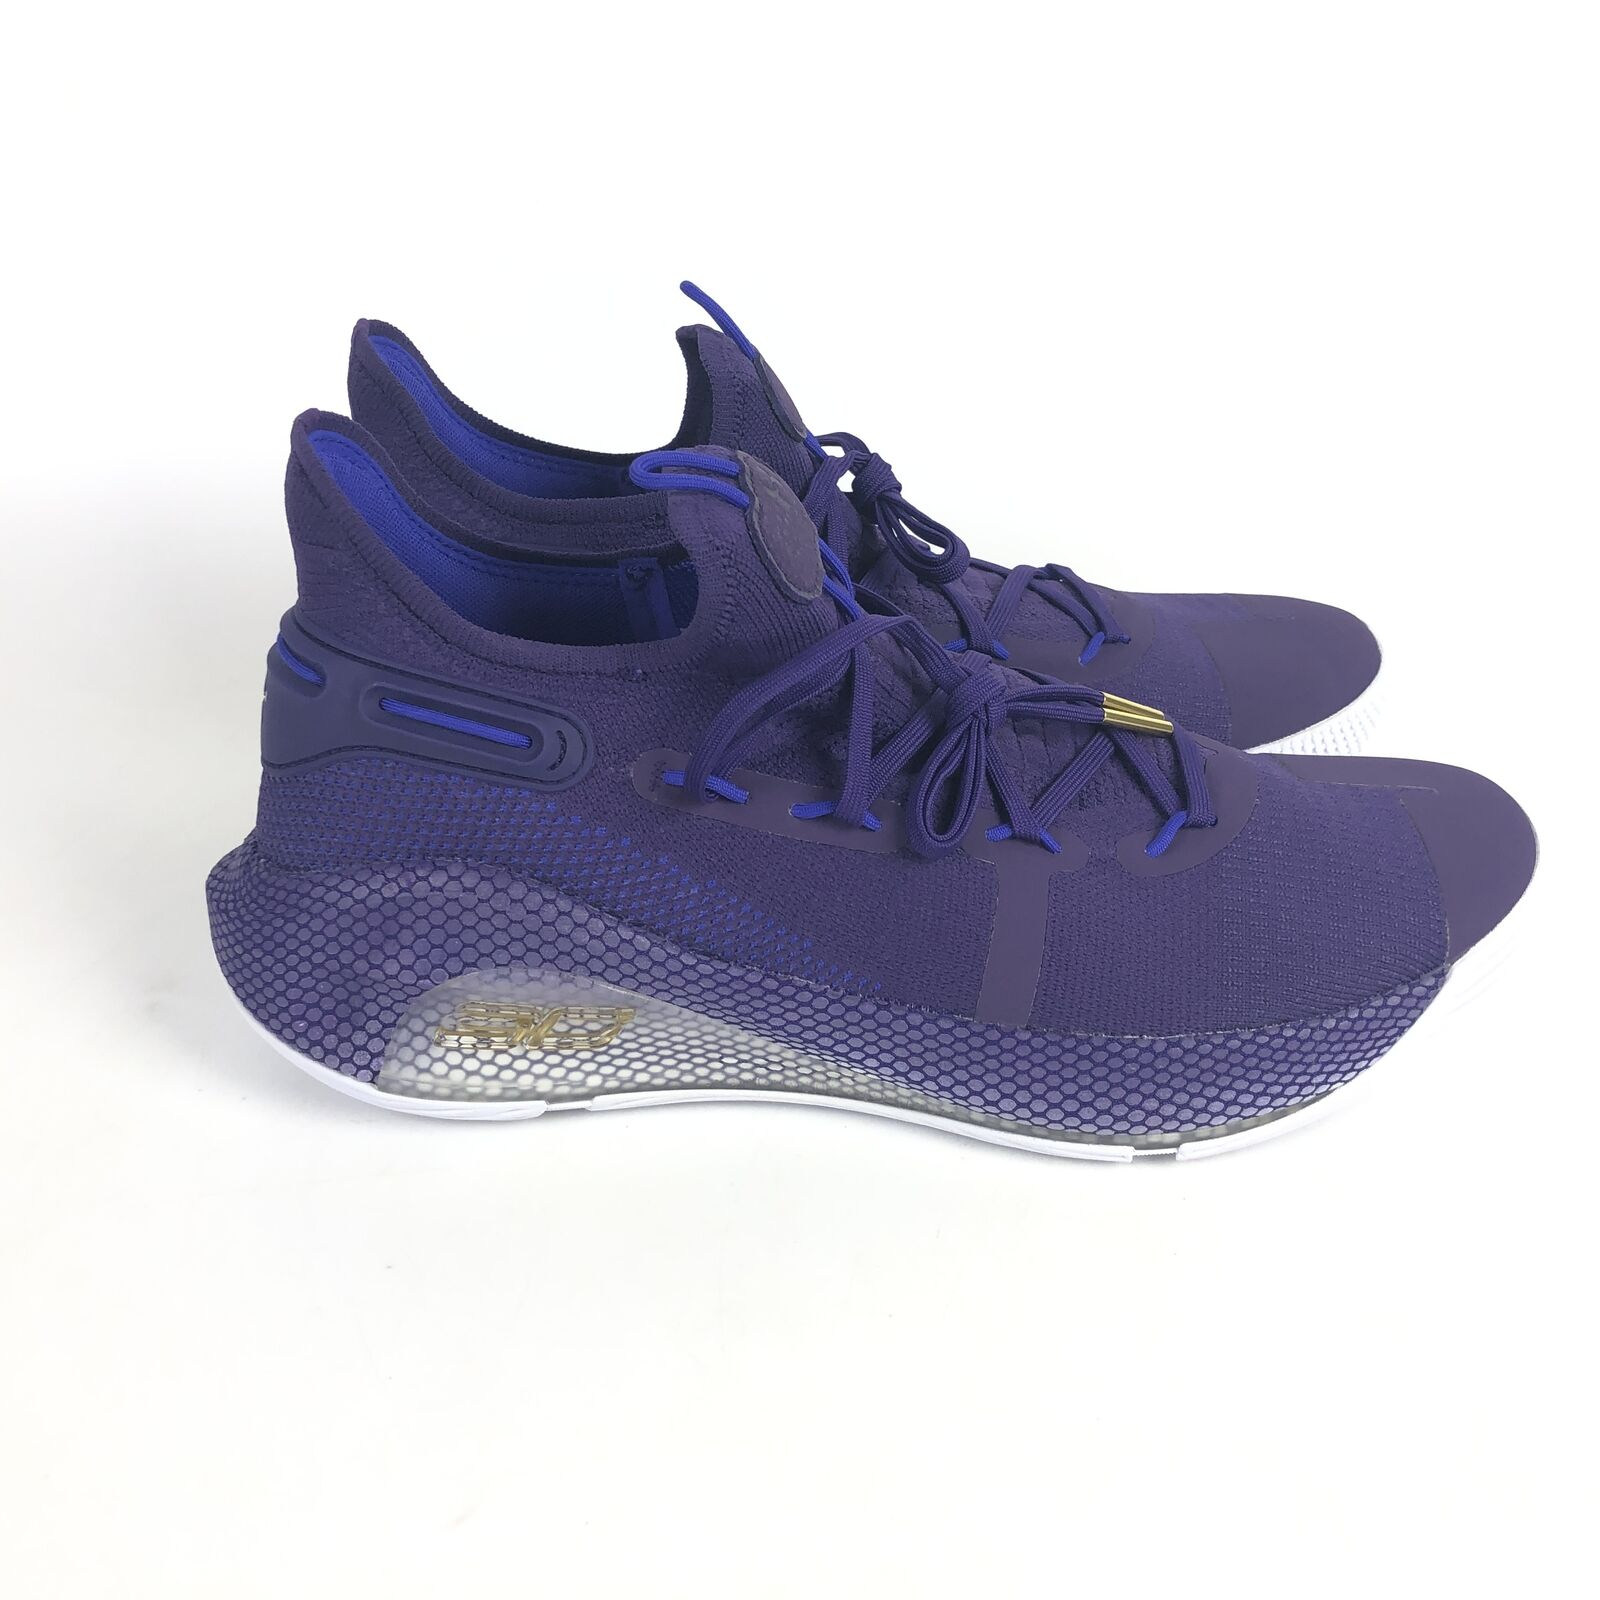 Under Armour Curry 6 Basketball Shoes Mens Size 12.5 Purple 3022893-500